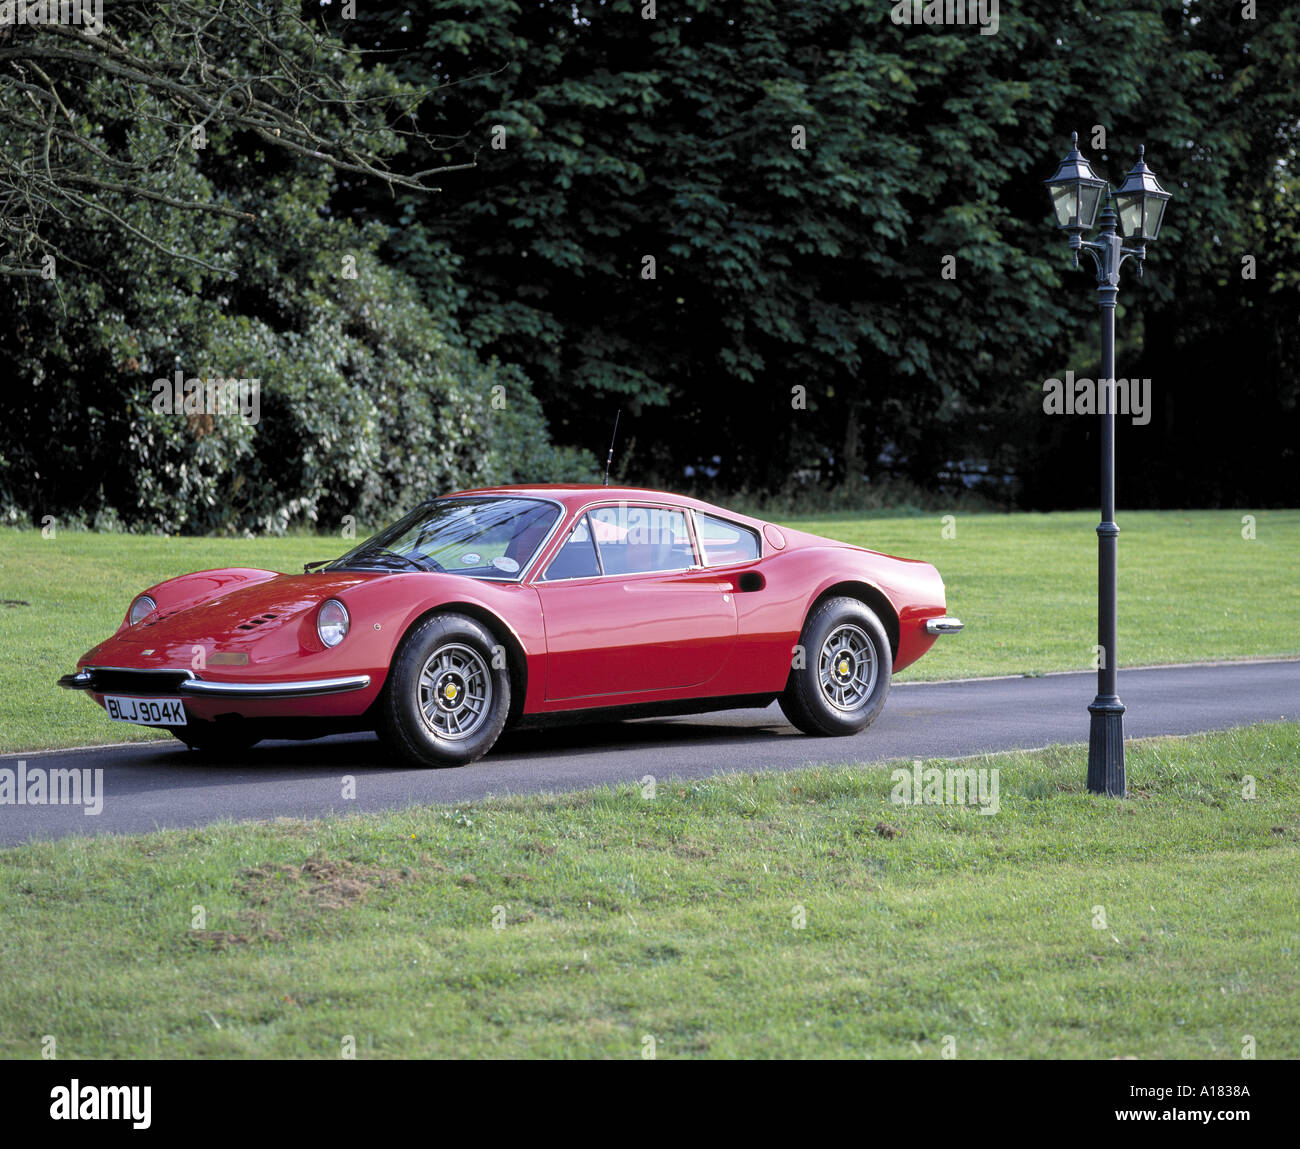 Page 2 Ferrari Dino High Resolution Stock Photography And Images Alamy